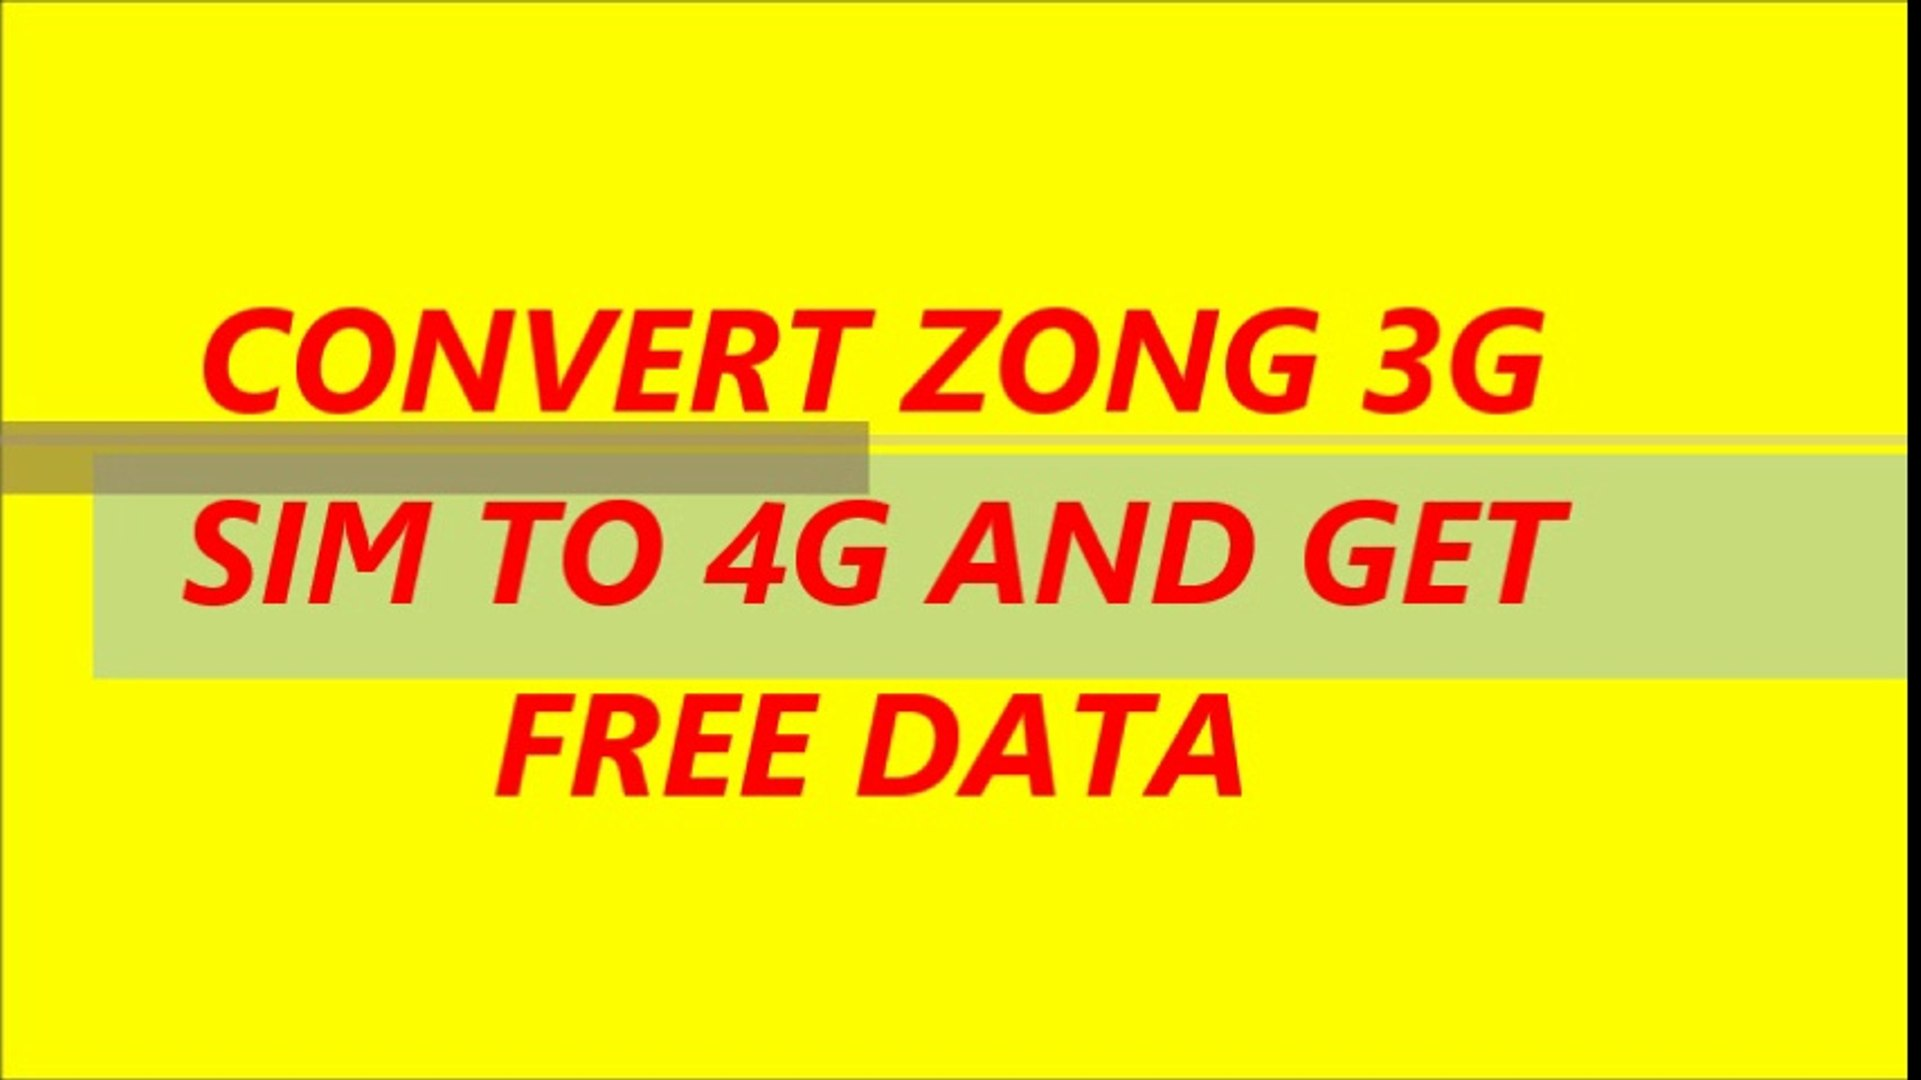 CONTVERT ZONG 3G SIM TO 4G AND GET FREE DATA